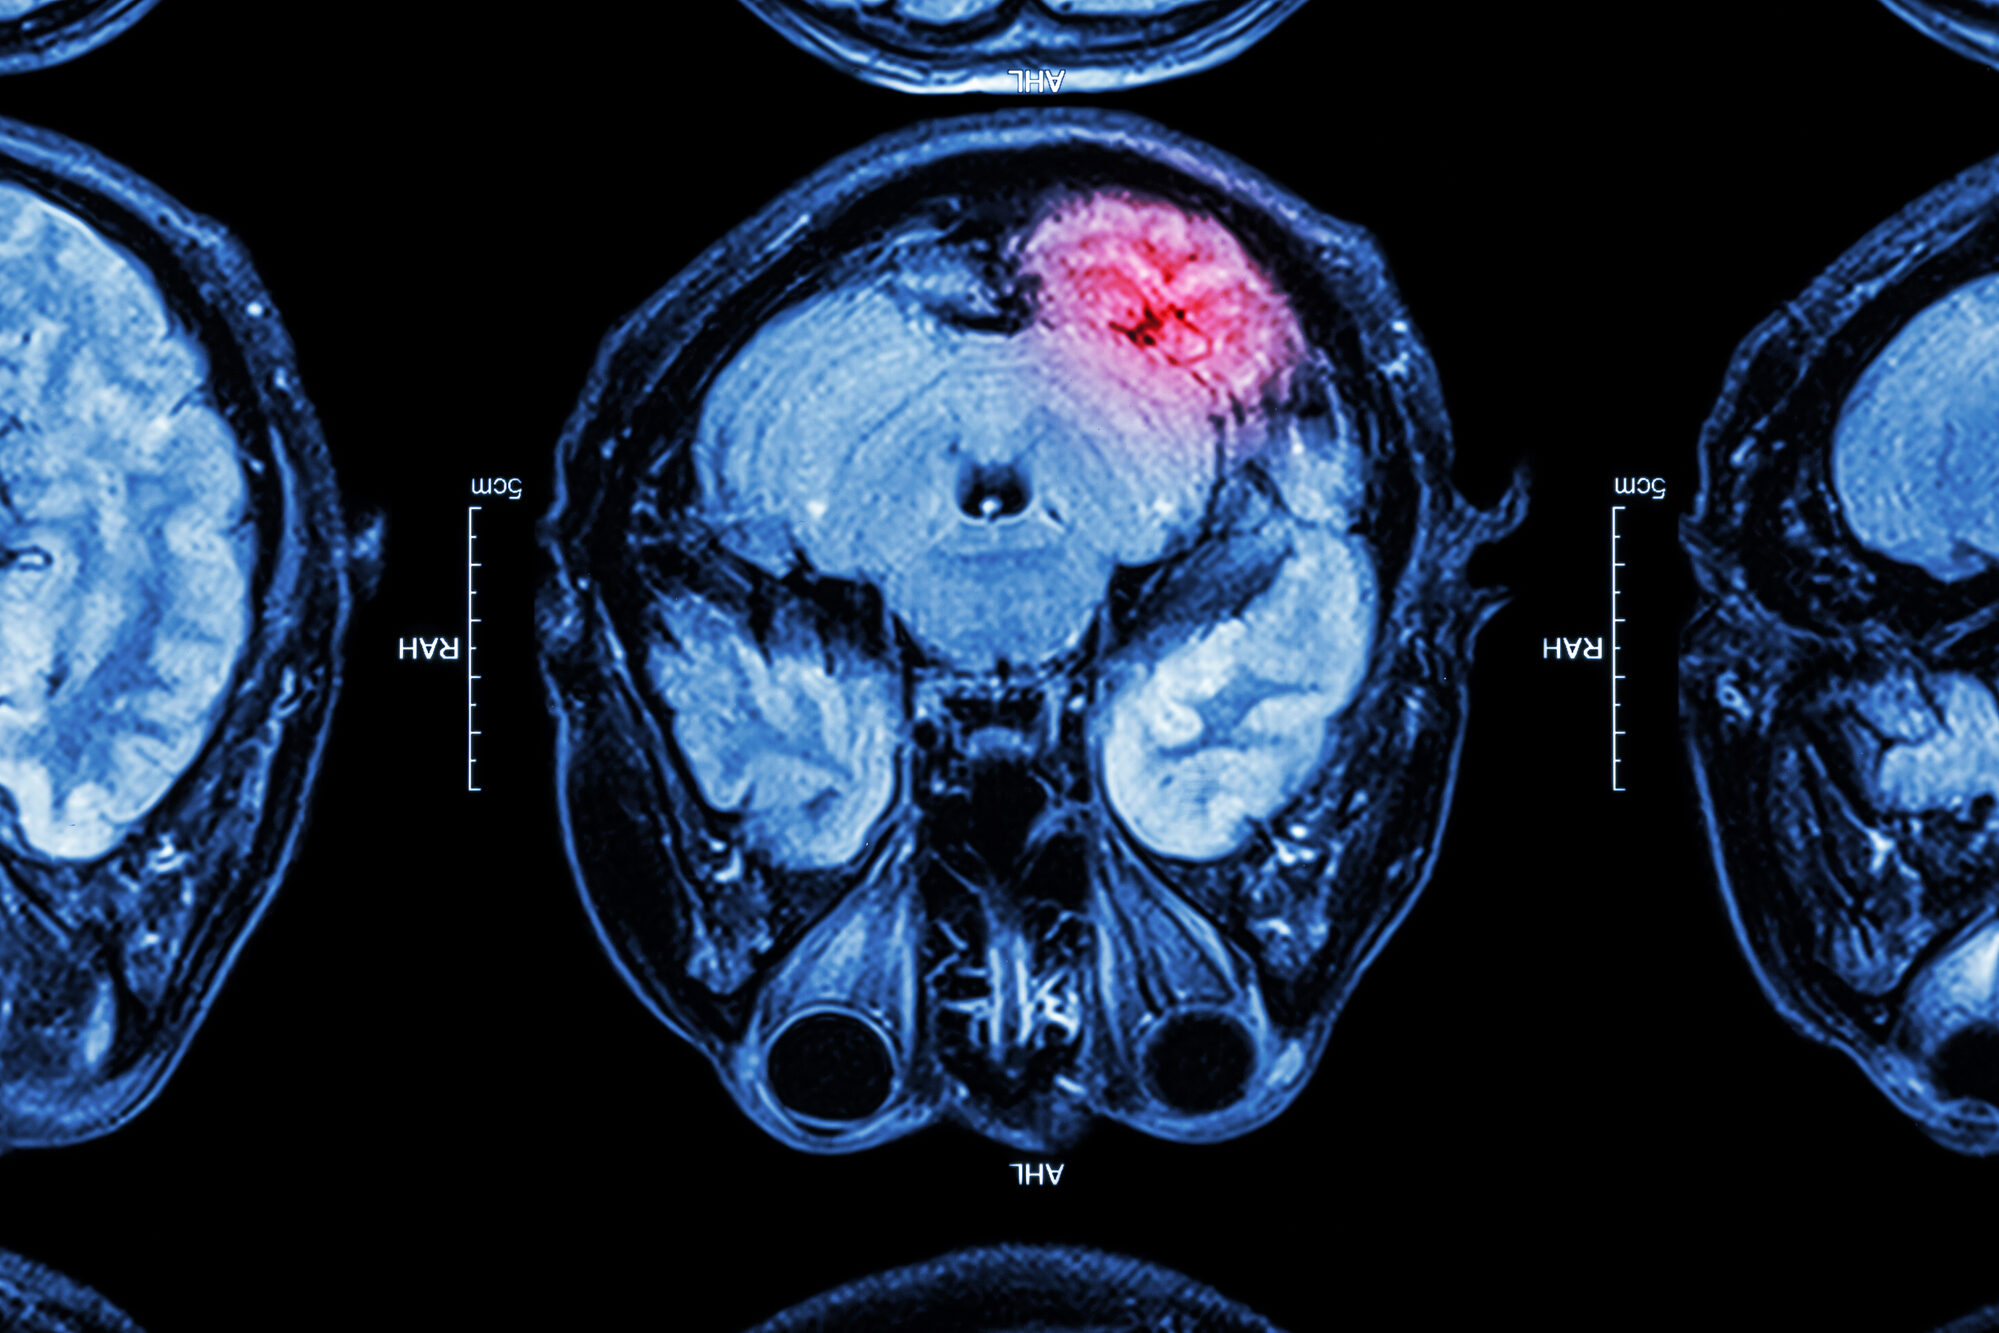 Do You Have Traumatic Brain Injury Questions?